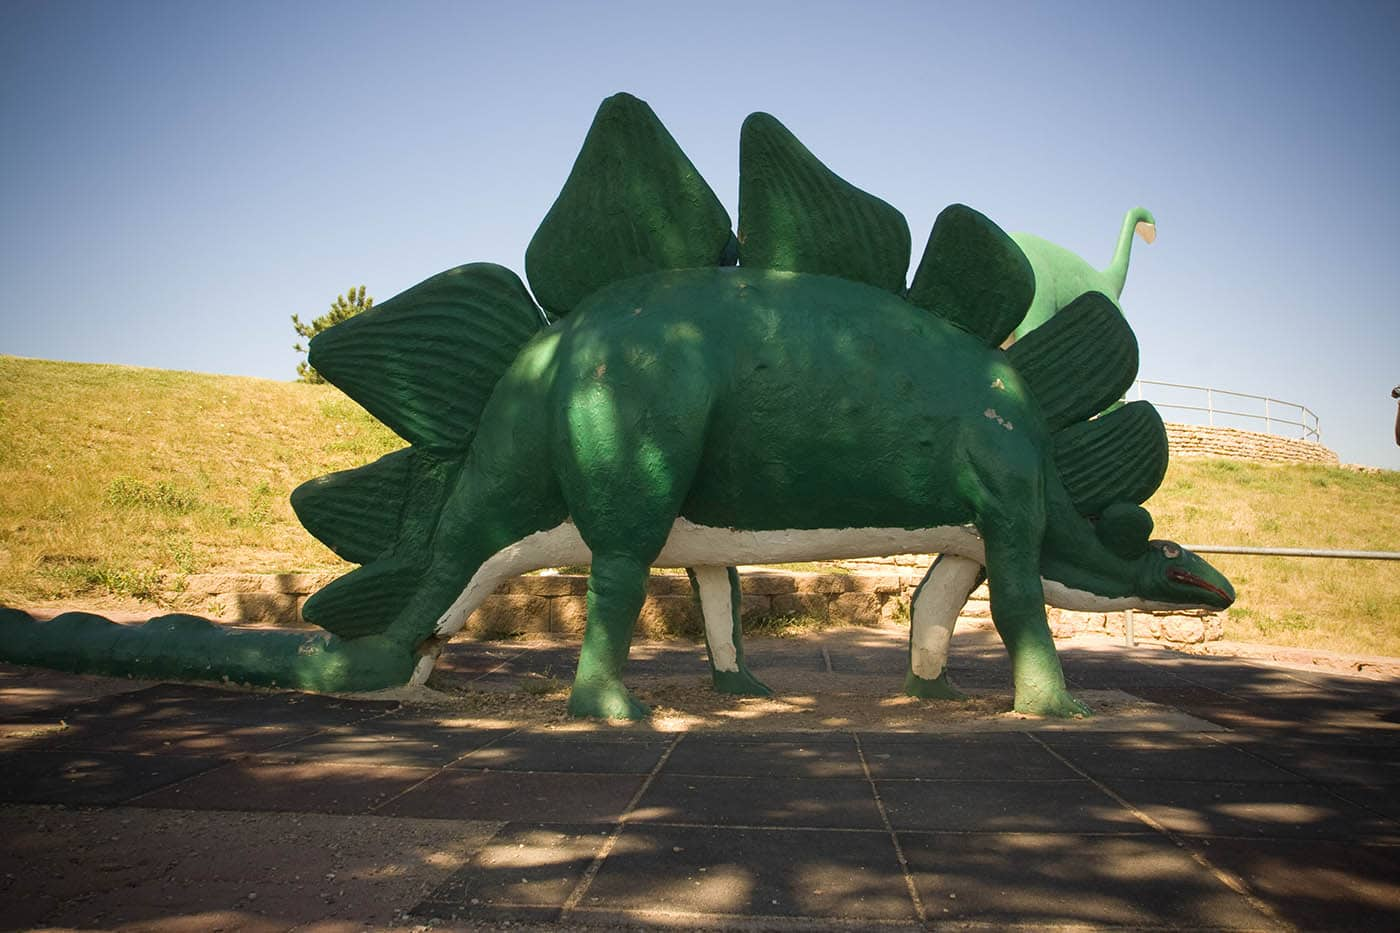 Rapid City Dinosaur Park in South Dakota